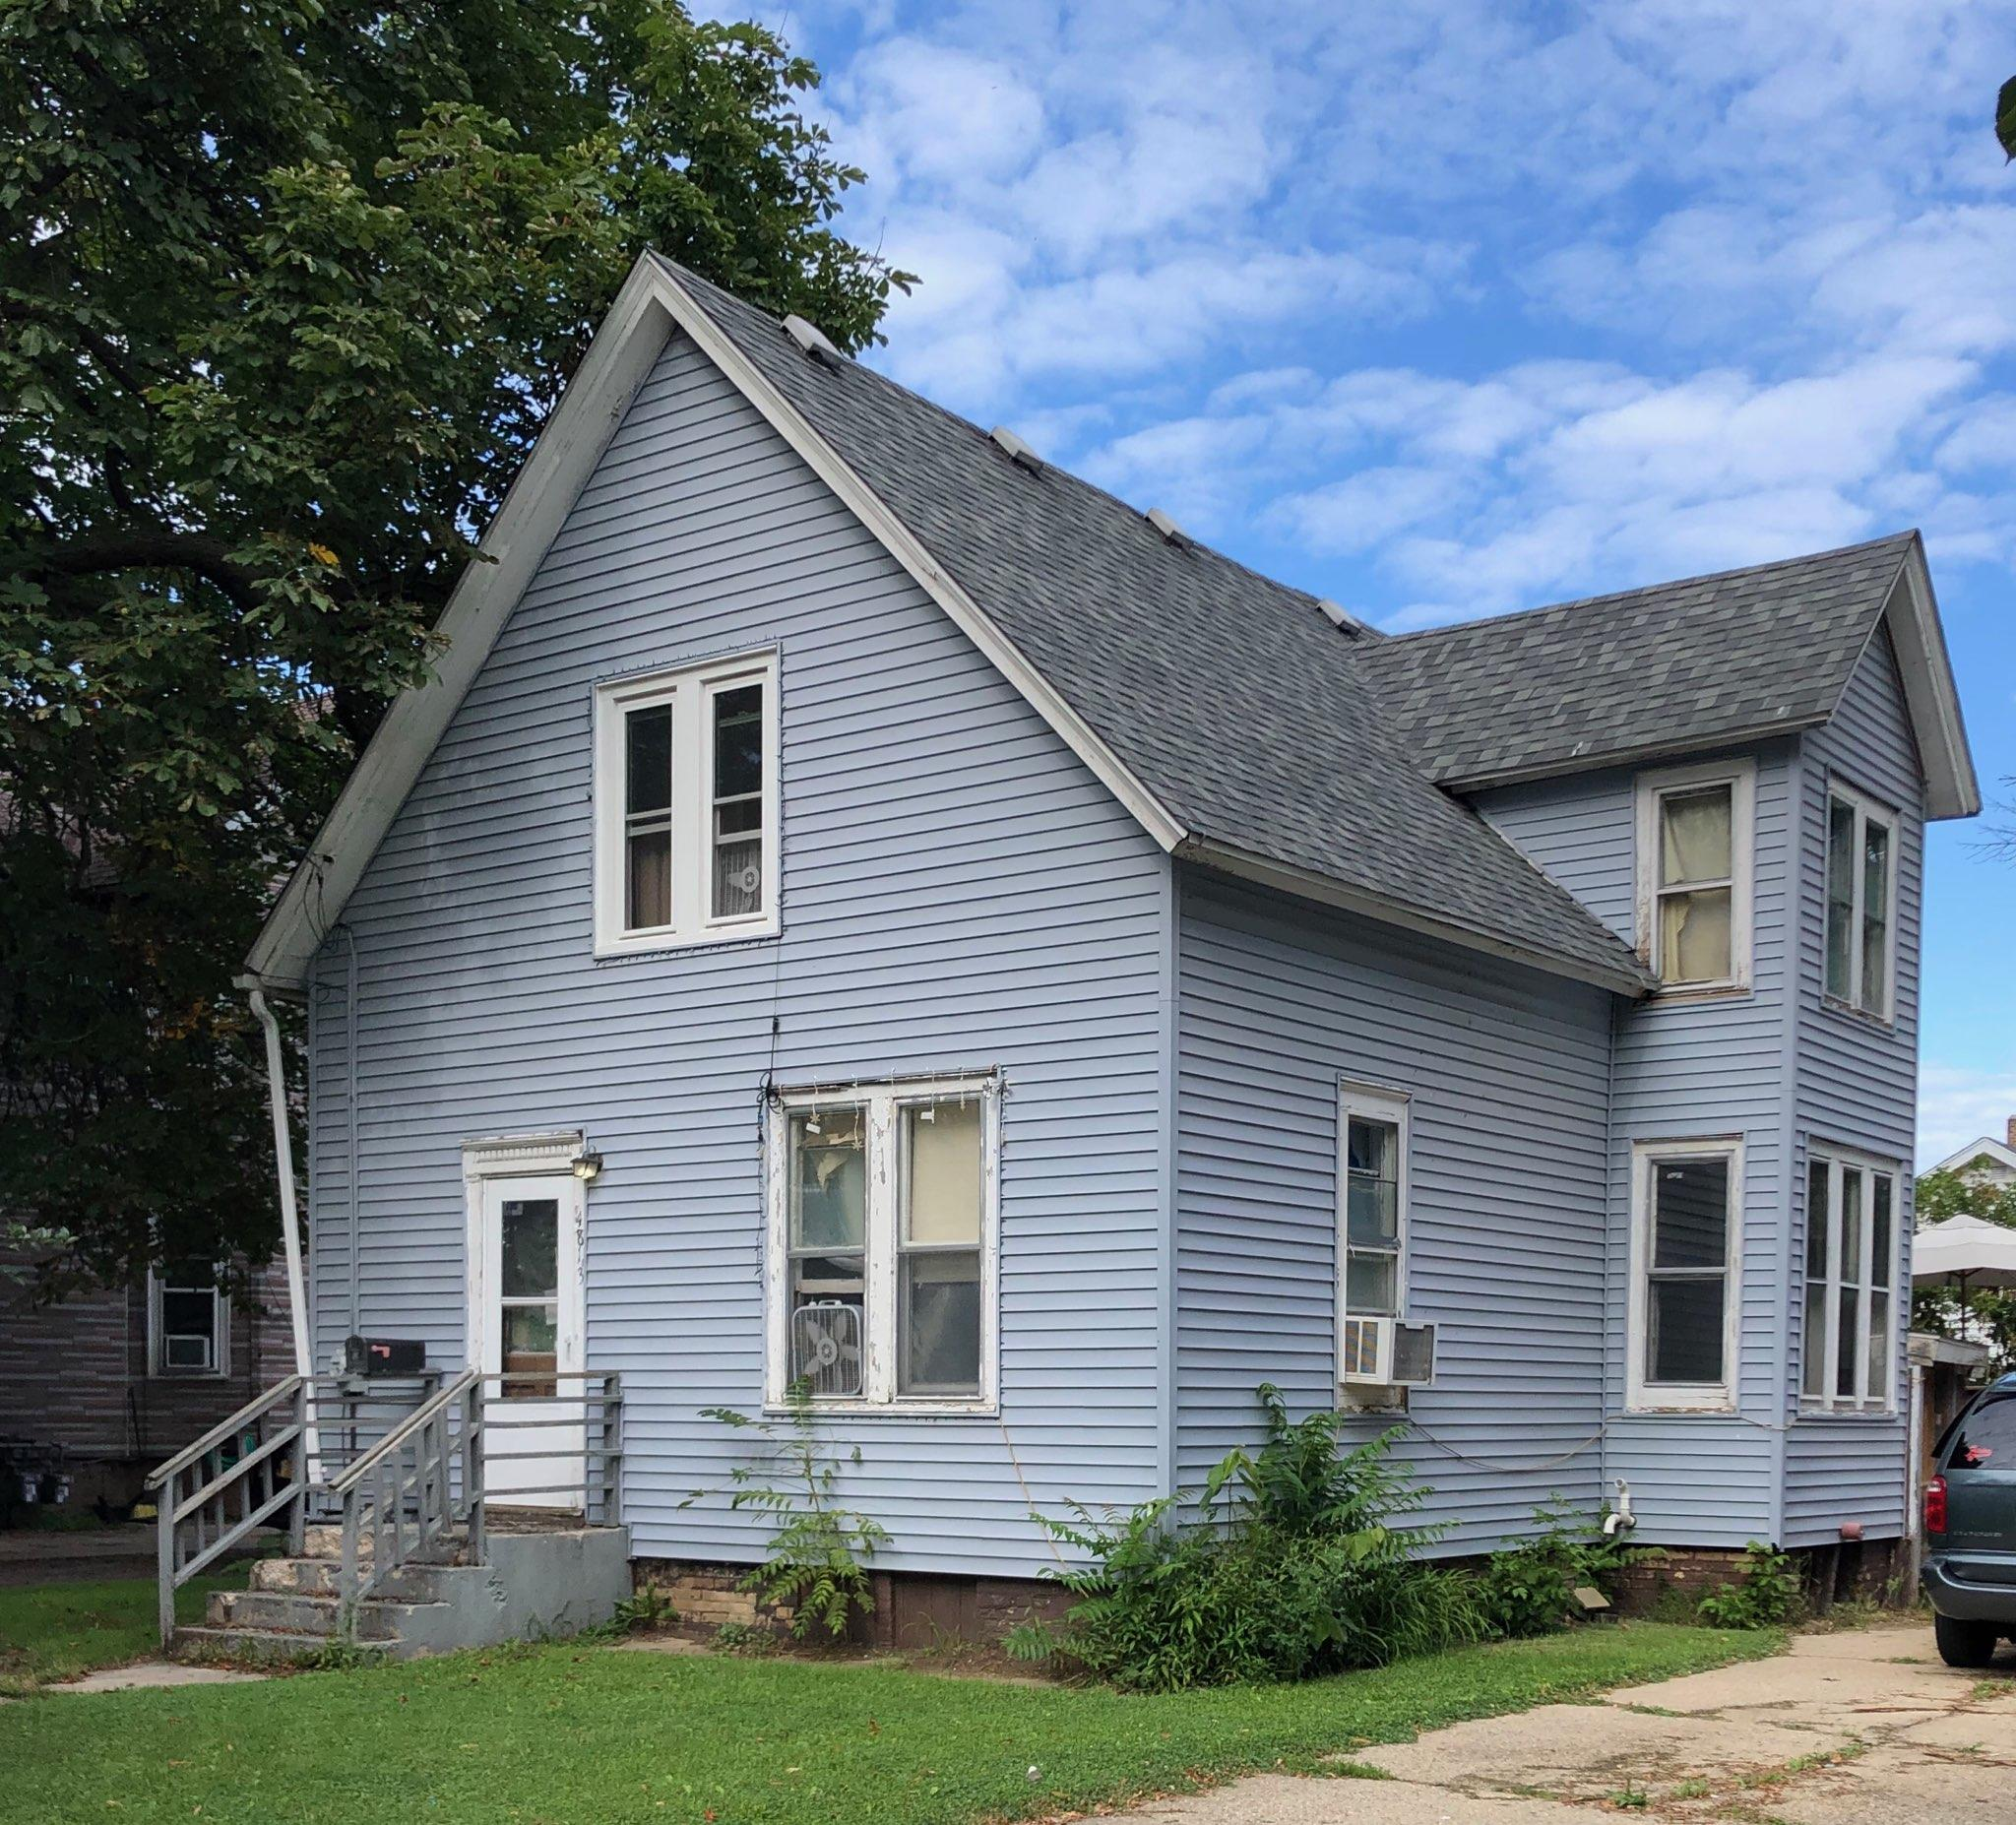 4813 14th Ave, Kenosha, Wisconsin 53140, 4 Bedrooms Bedrooms, ,1 BathroomBathrooms,Single-family,For Sale,14th Ave,1702810